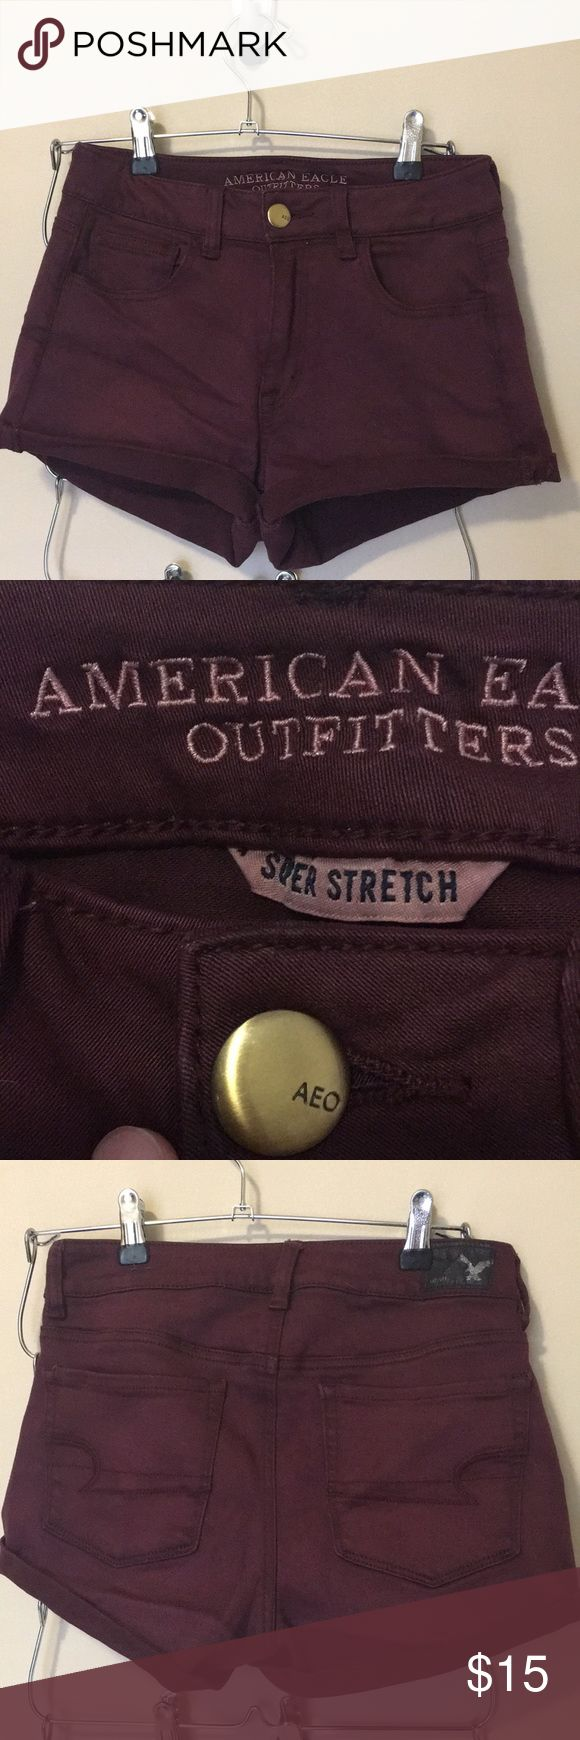 American Eagle super stretch maroon shorts size 4 American Eagle super stretch maroon shorts size 4, rolled bottoms.  excellent condition. American Eagle Outfitters Shorts Jean Shorts